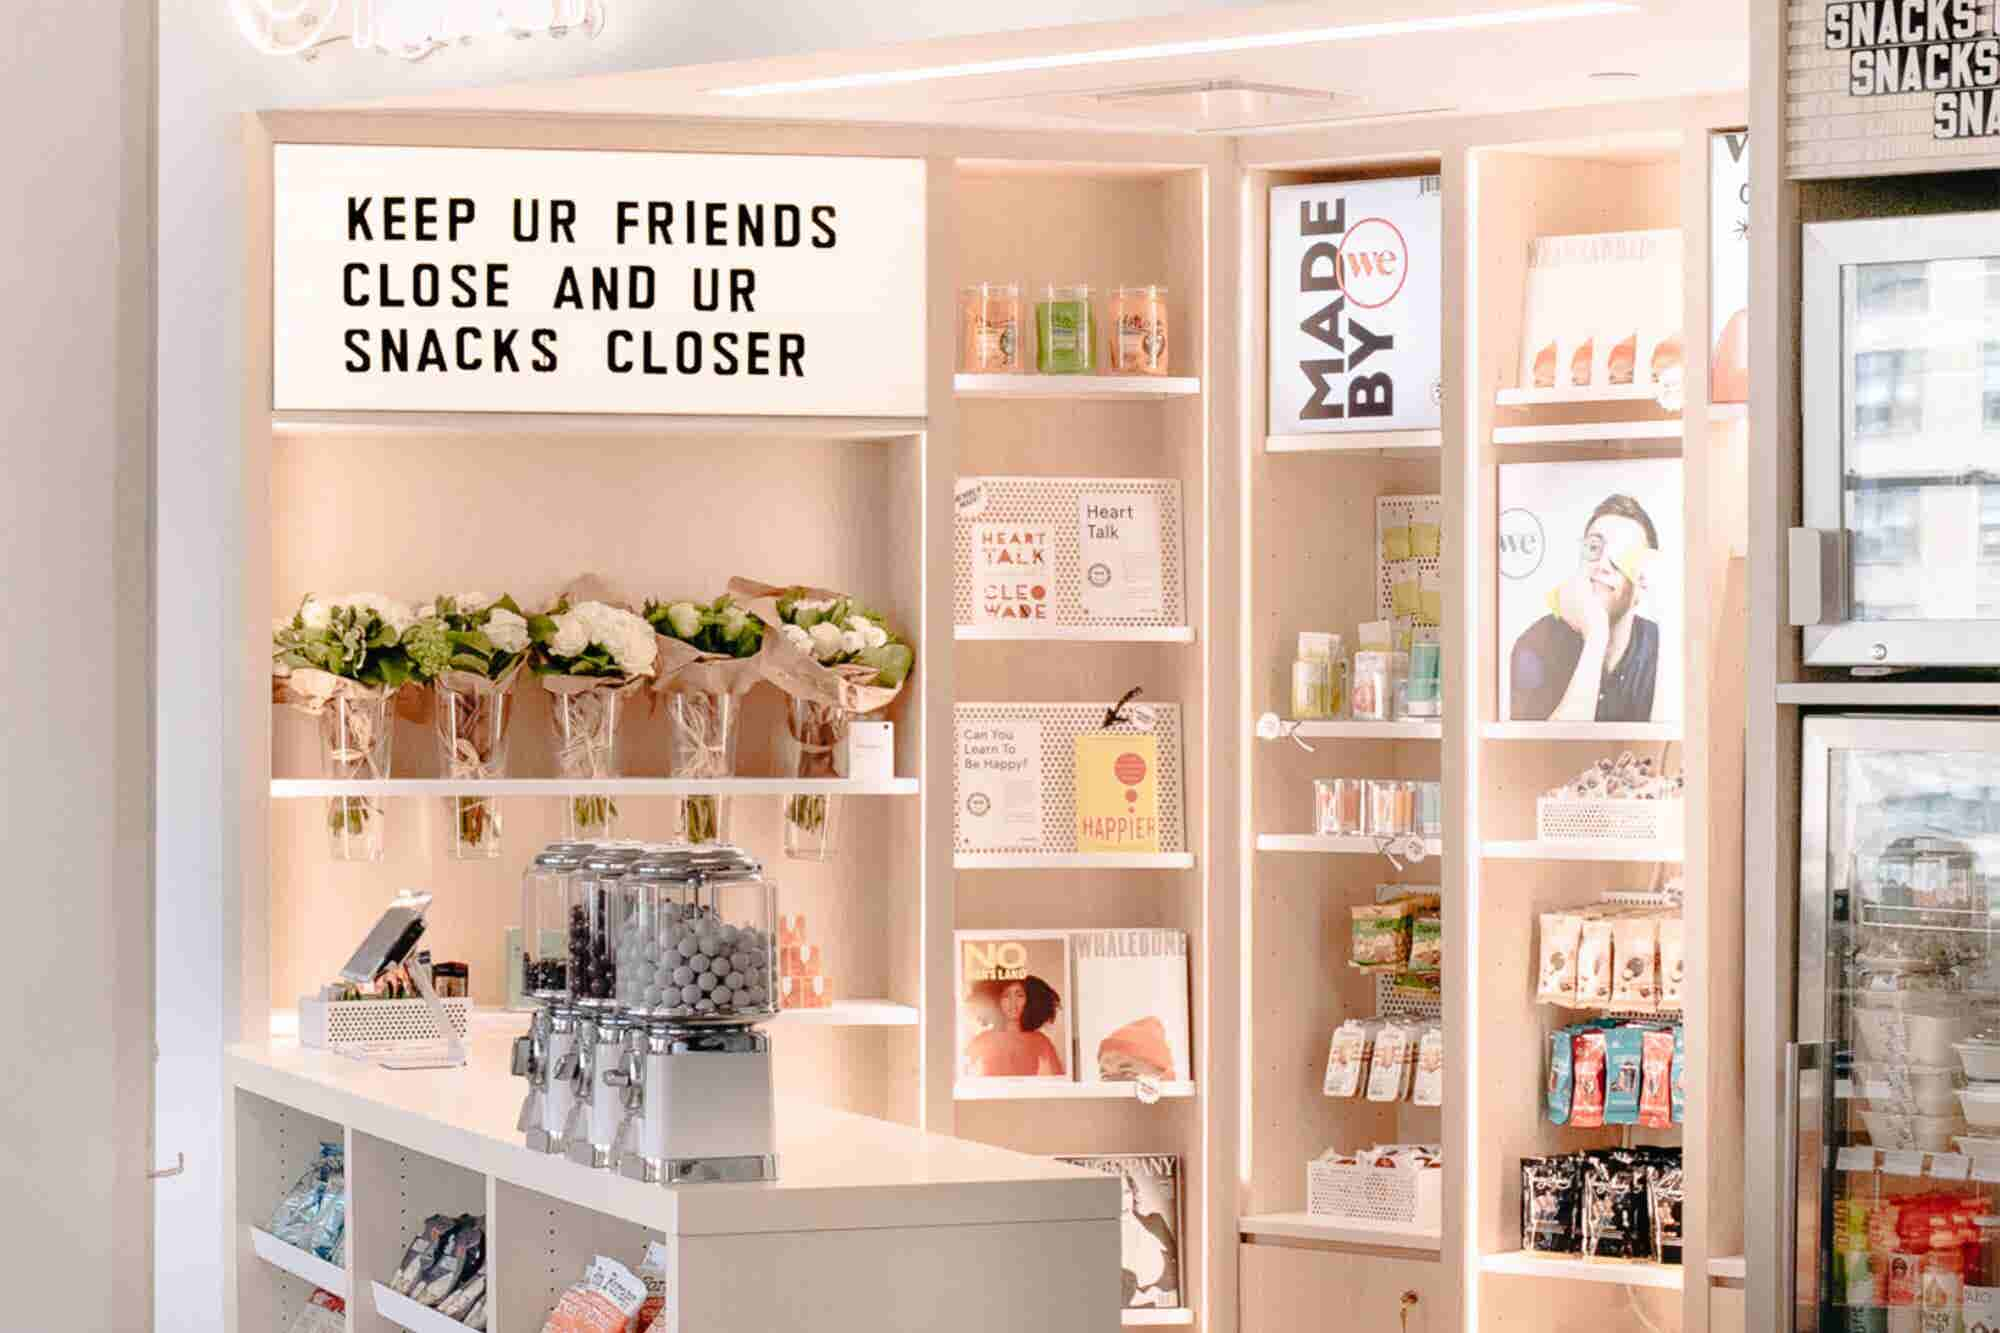 WeWork Opens a Retail Operation, Highlighting Products Made by Its Mem...